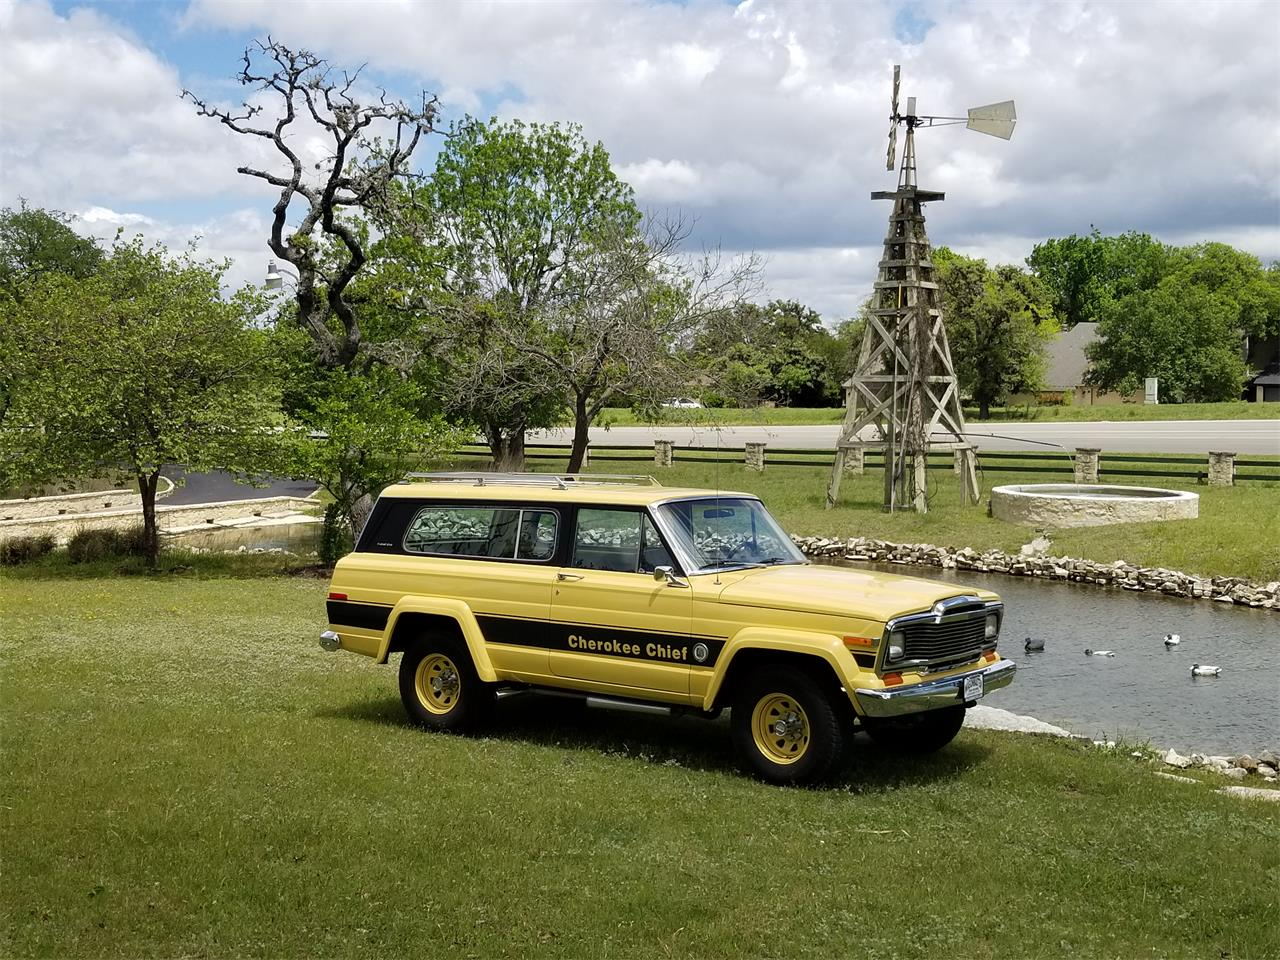 1979 Jeep Cherokee Chief for sale in Kerrville, TX – photo 34